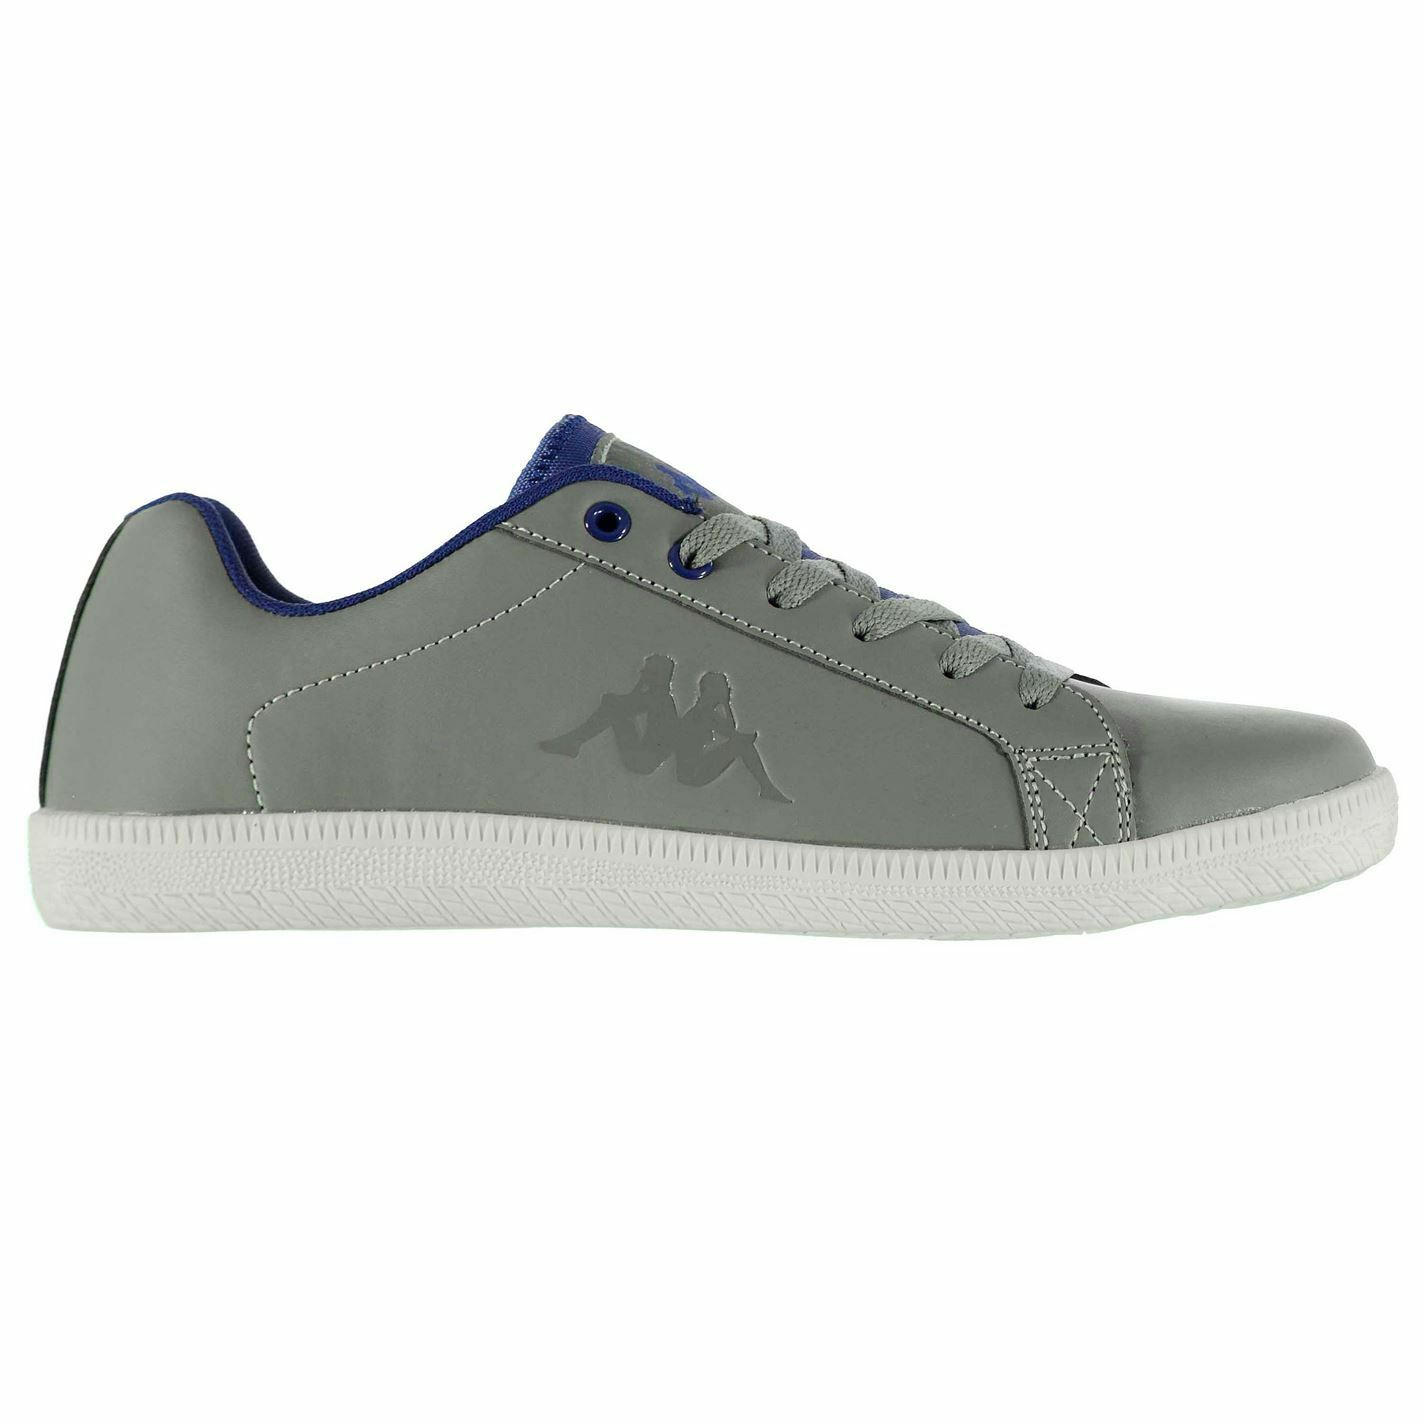 Kappa Mens Frid Trainers Sneakers Lace Up shoes Casual Stitched Detailing